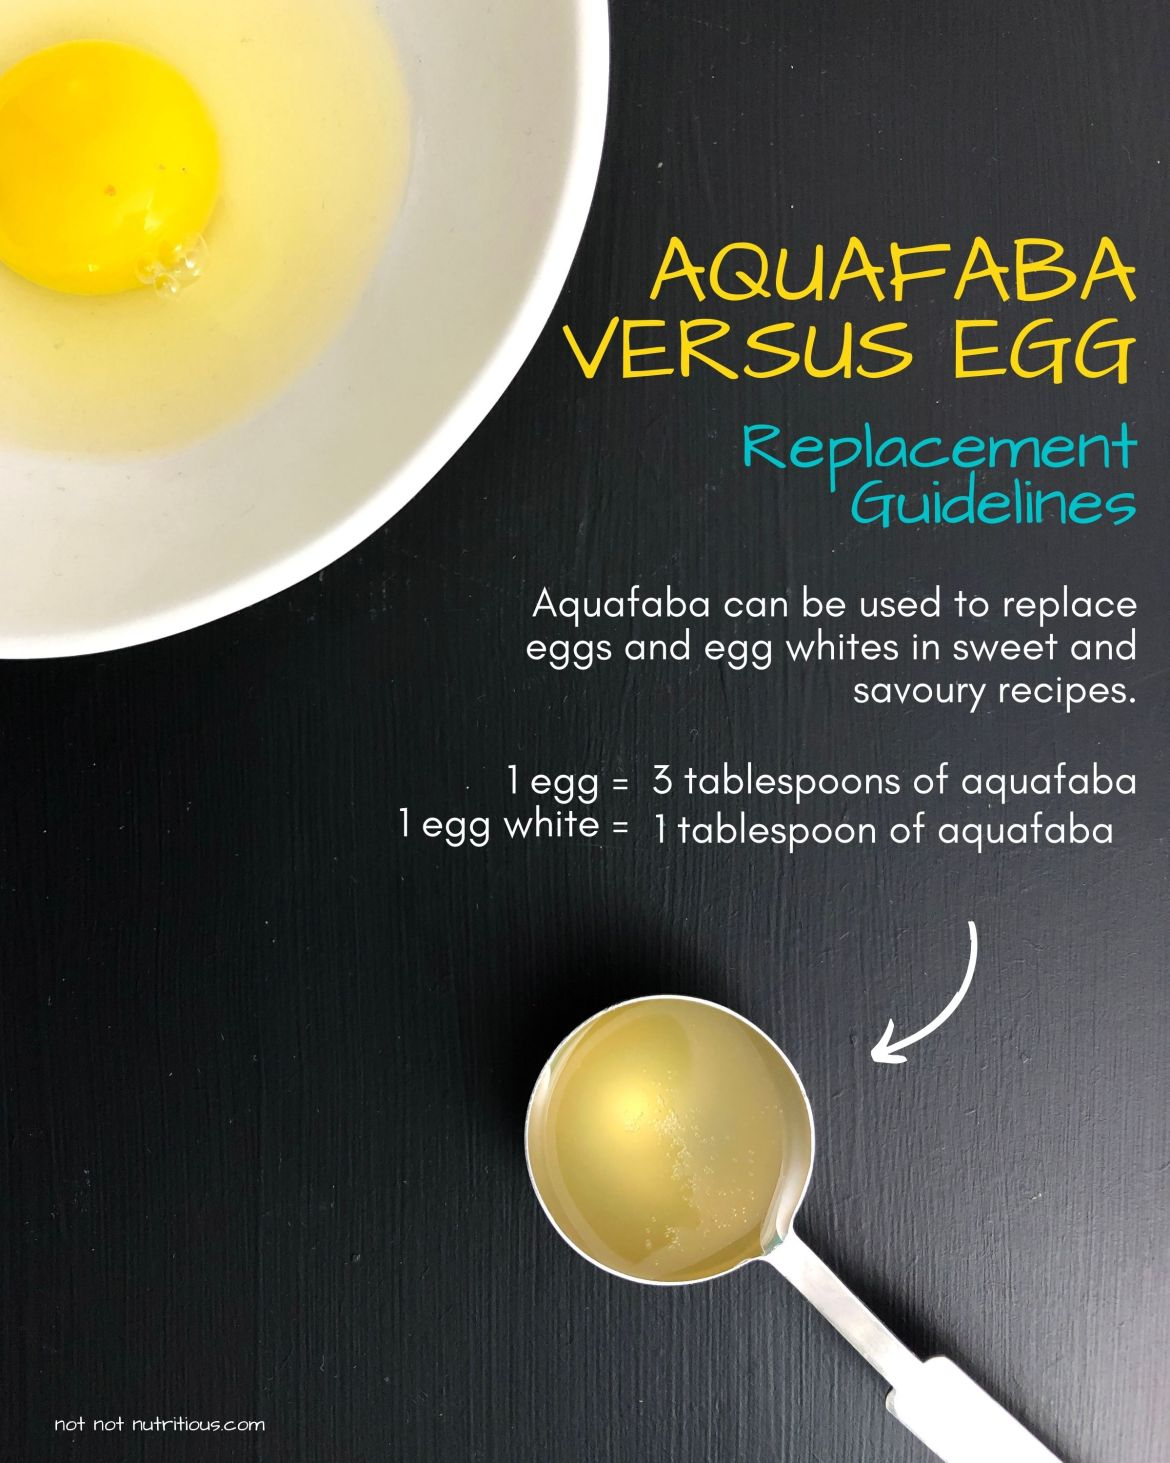 Infographic about aquafaba. Image is a top-down shot of tablespoon of aquafaba in the bottom left corner and an egg in the top right corner. Text reads: Aquafaba can be used to replace eggs and egg whites in sweet and savoury recipes. Aquafaba has binding, leavening, emulsifying, and thickening properties. Replacement Guidelines: 1  egg = 3 tablespoons of aquafaba. 1 egg white = 1 tablespoon of aquafaba.